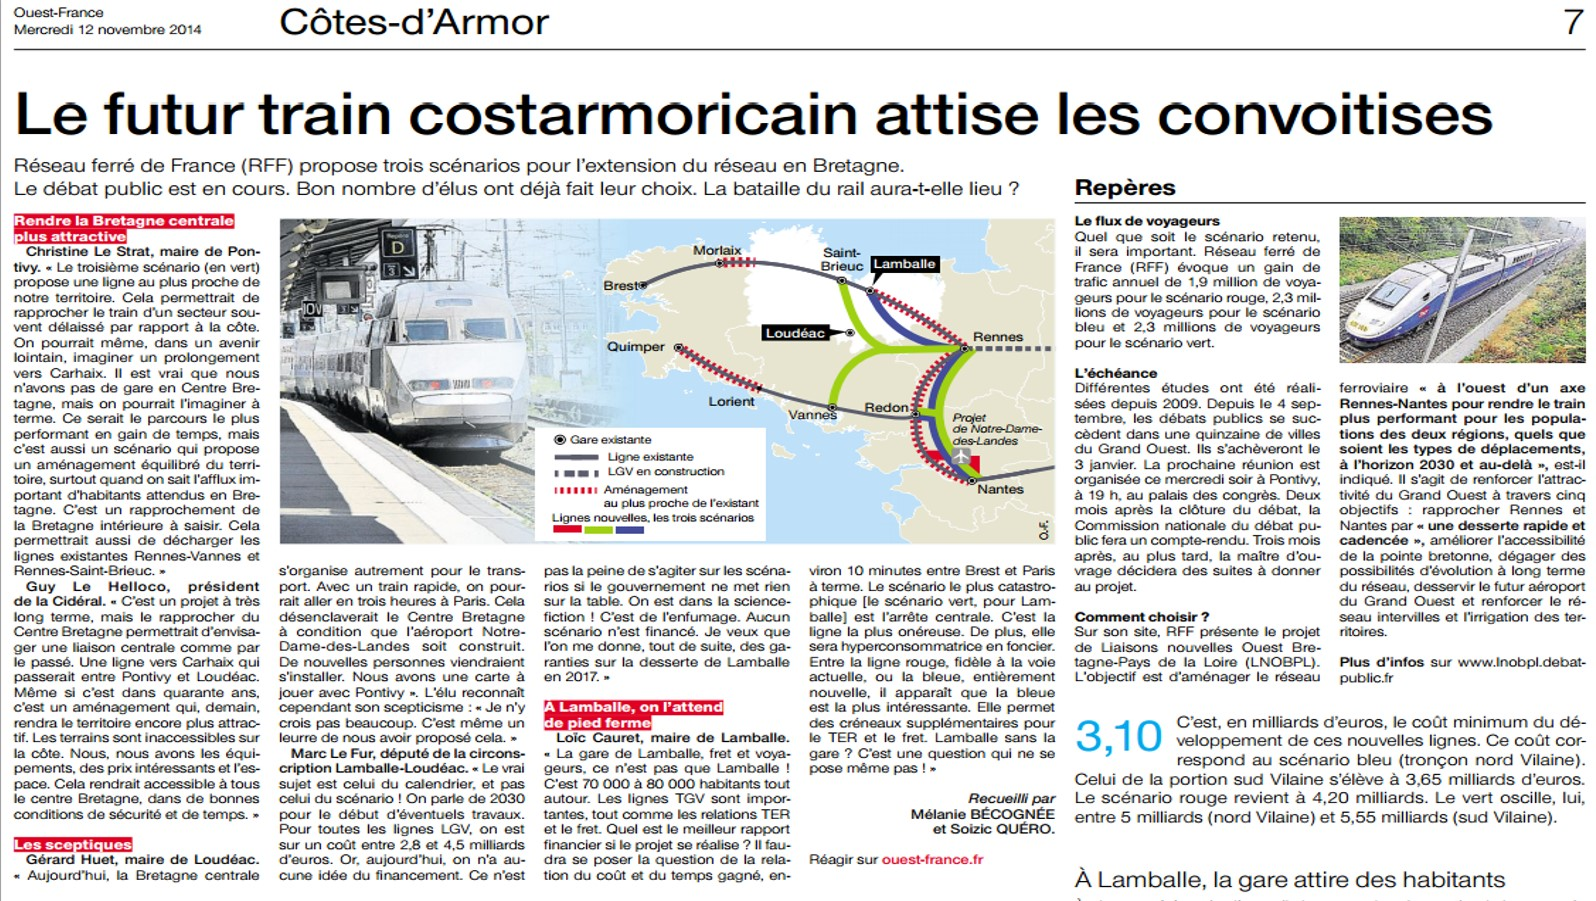 Le train attire la convoitise des costarmoricains